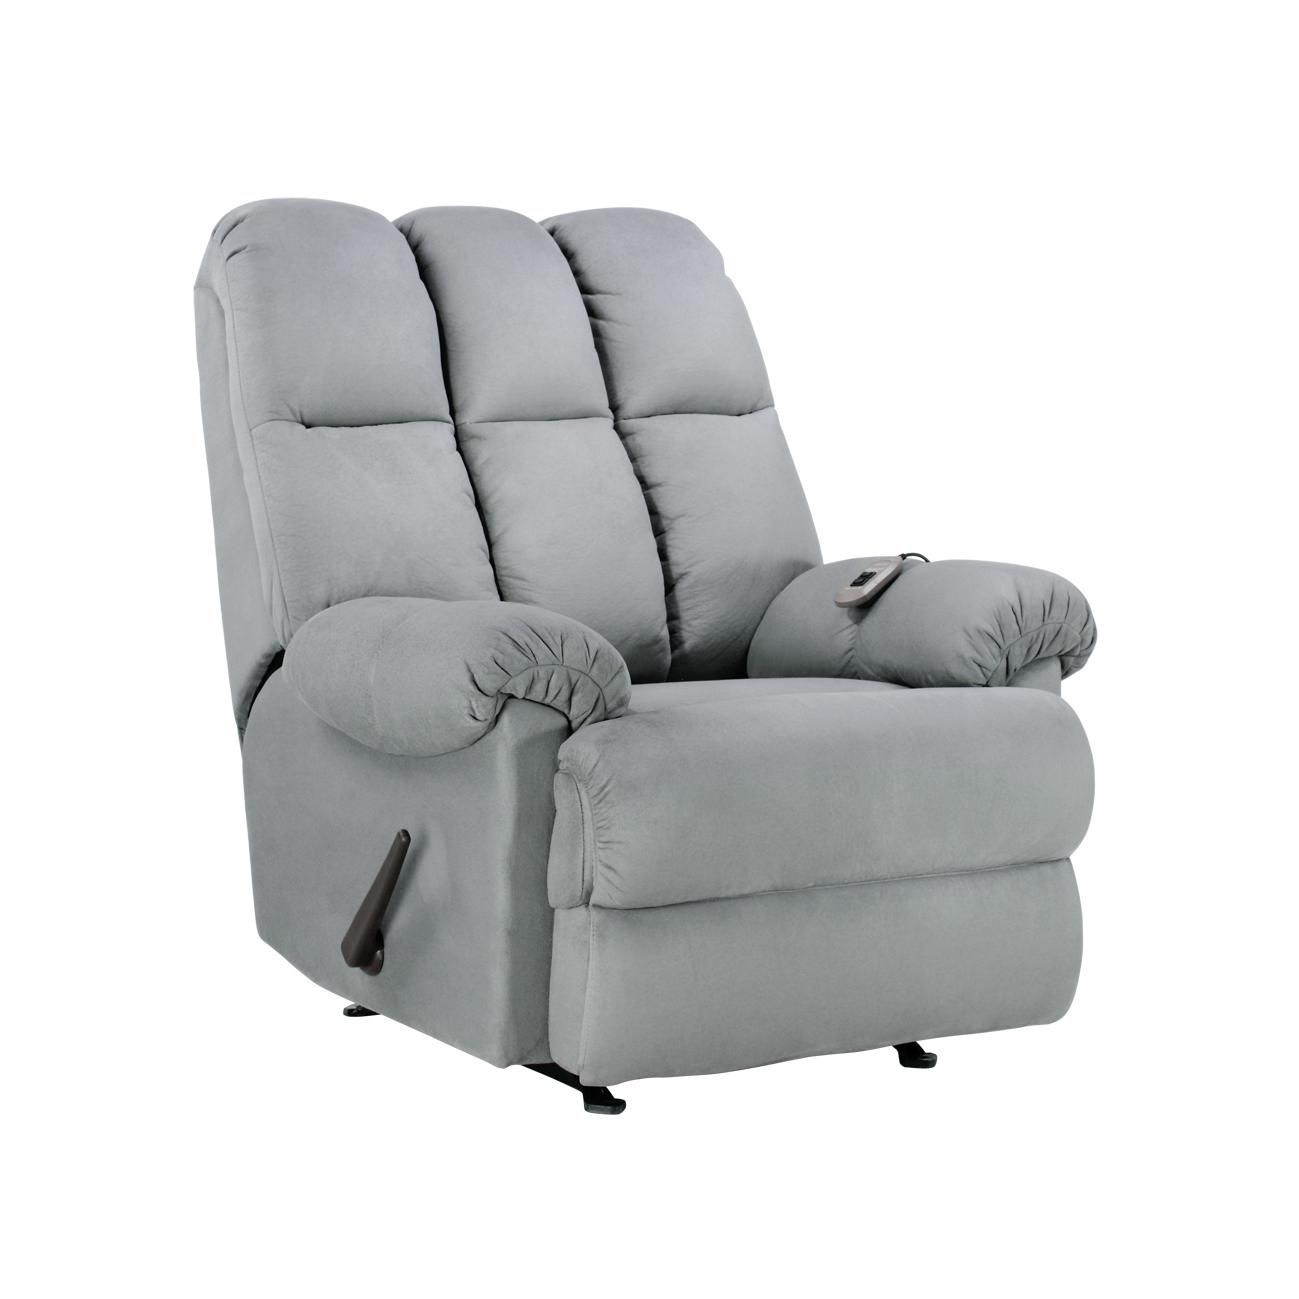 Stupendous Dorel Asia Padded Massage Recliner Grey Dorelsummerfun Cjindustries Chair Design For Home Cjindustriesco